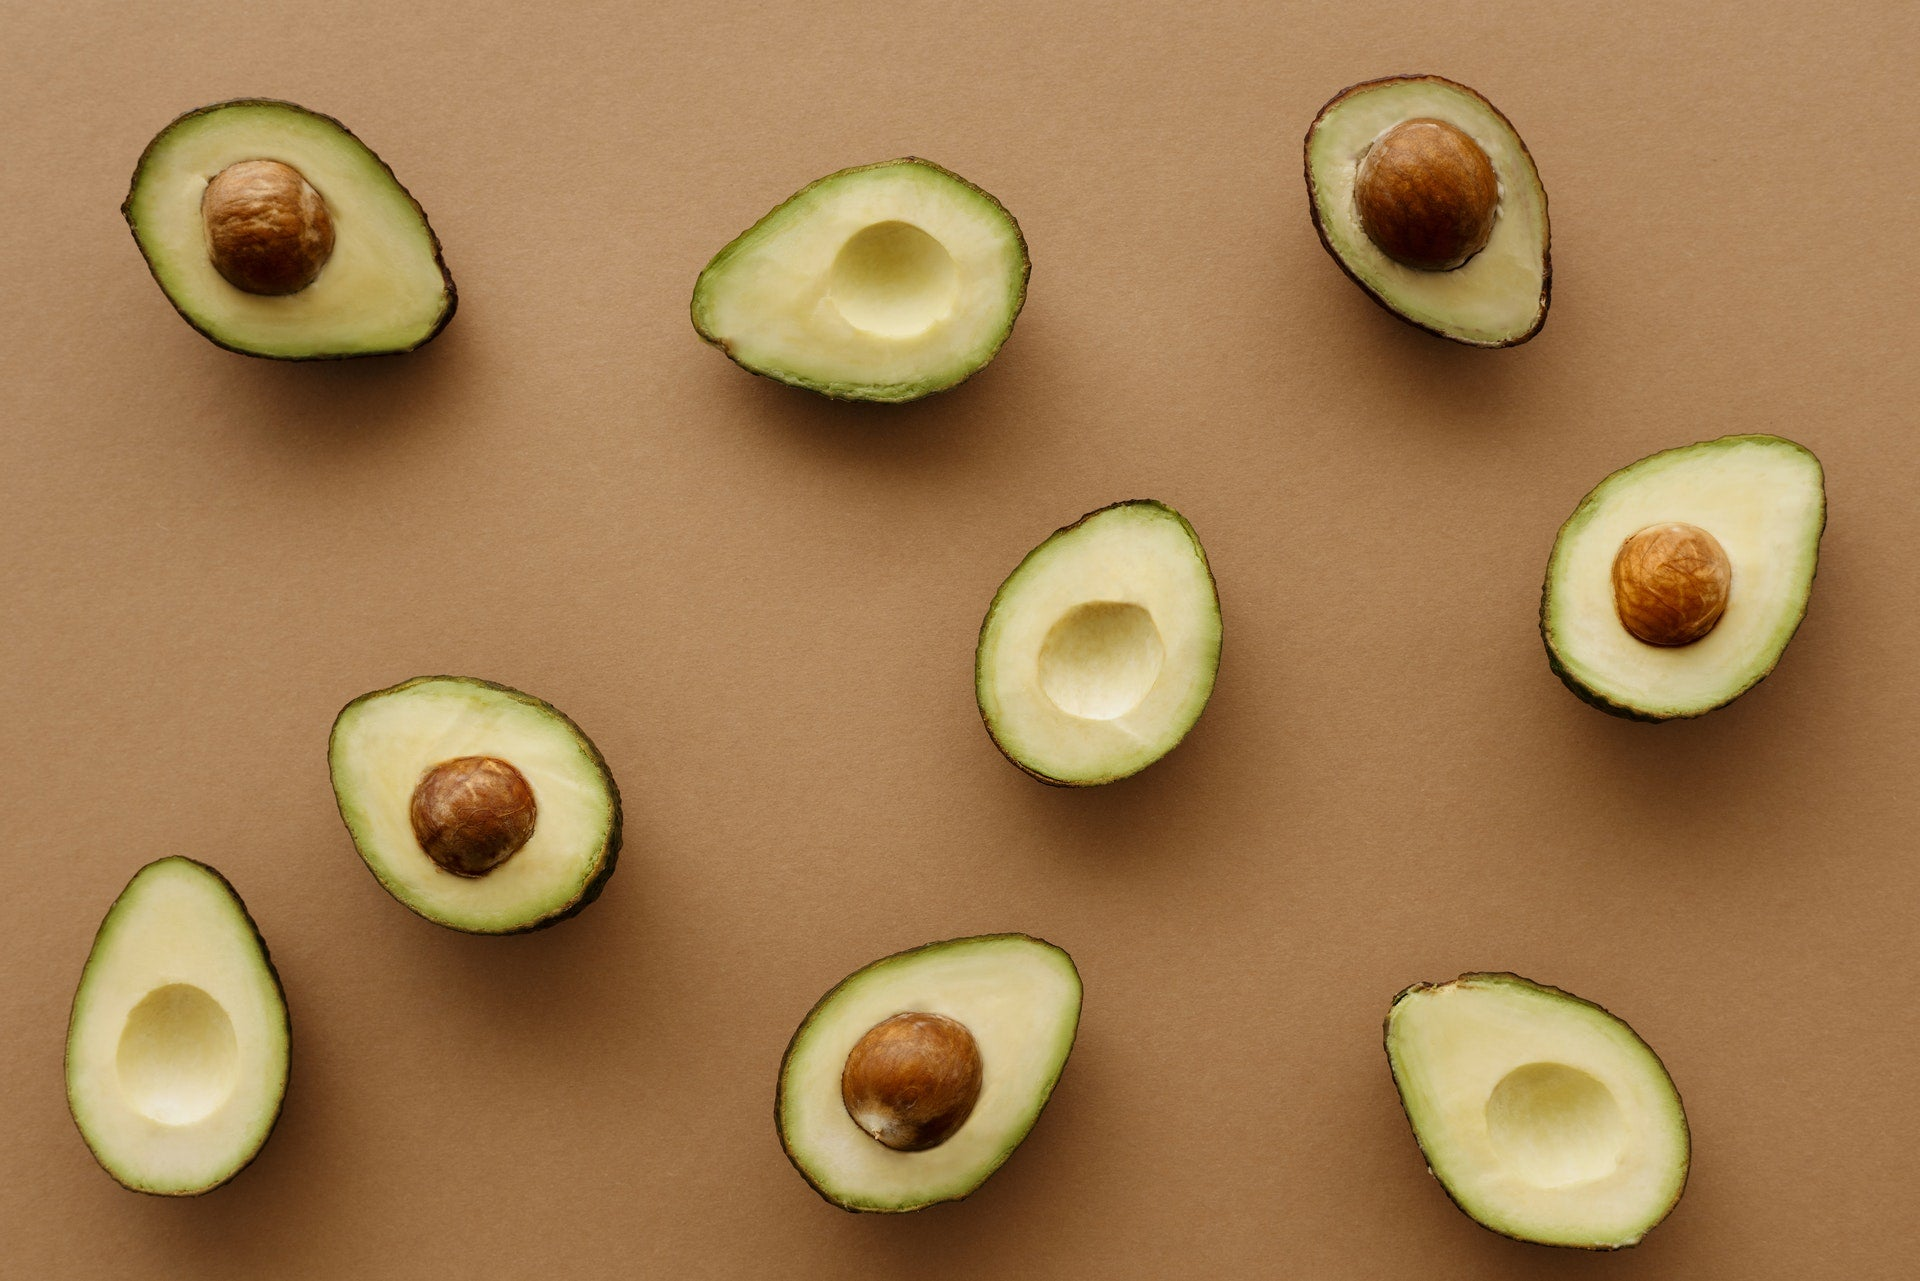 Avocados, a food high in magnesium, cut in half.